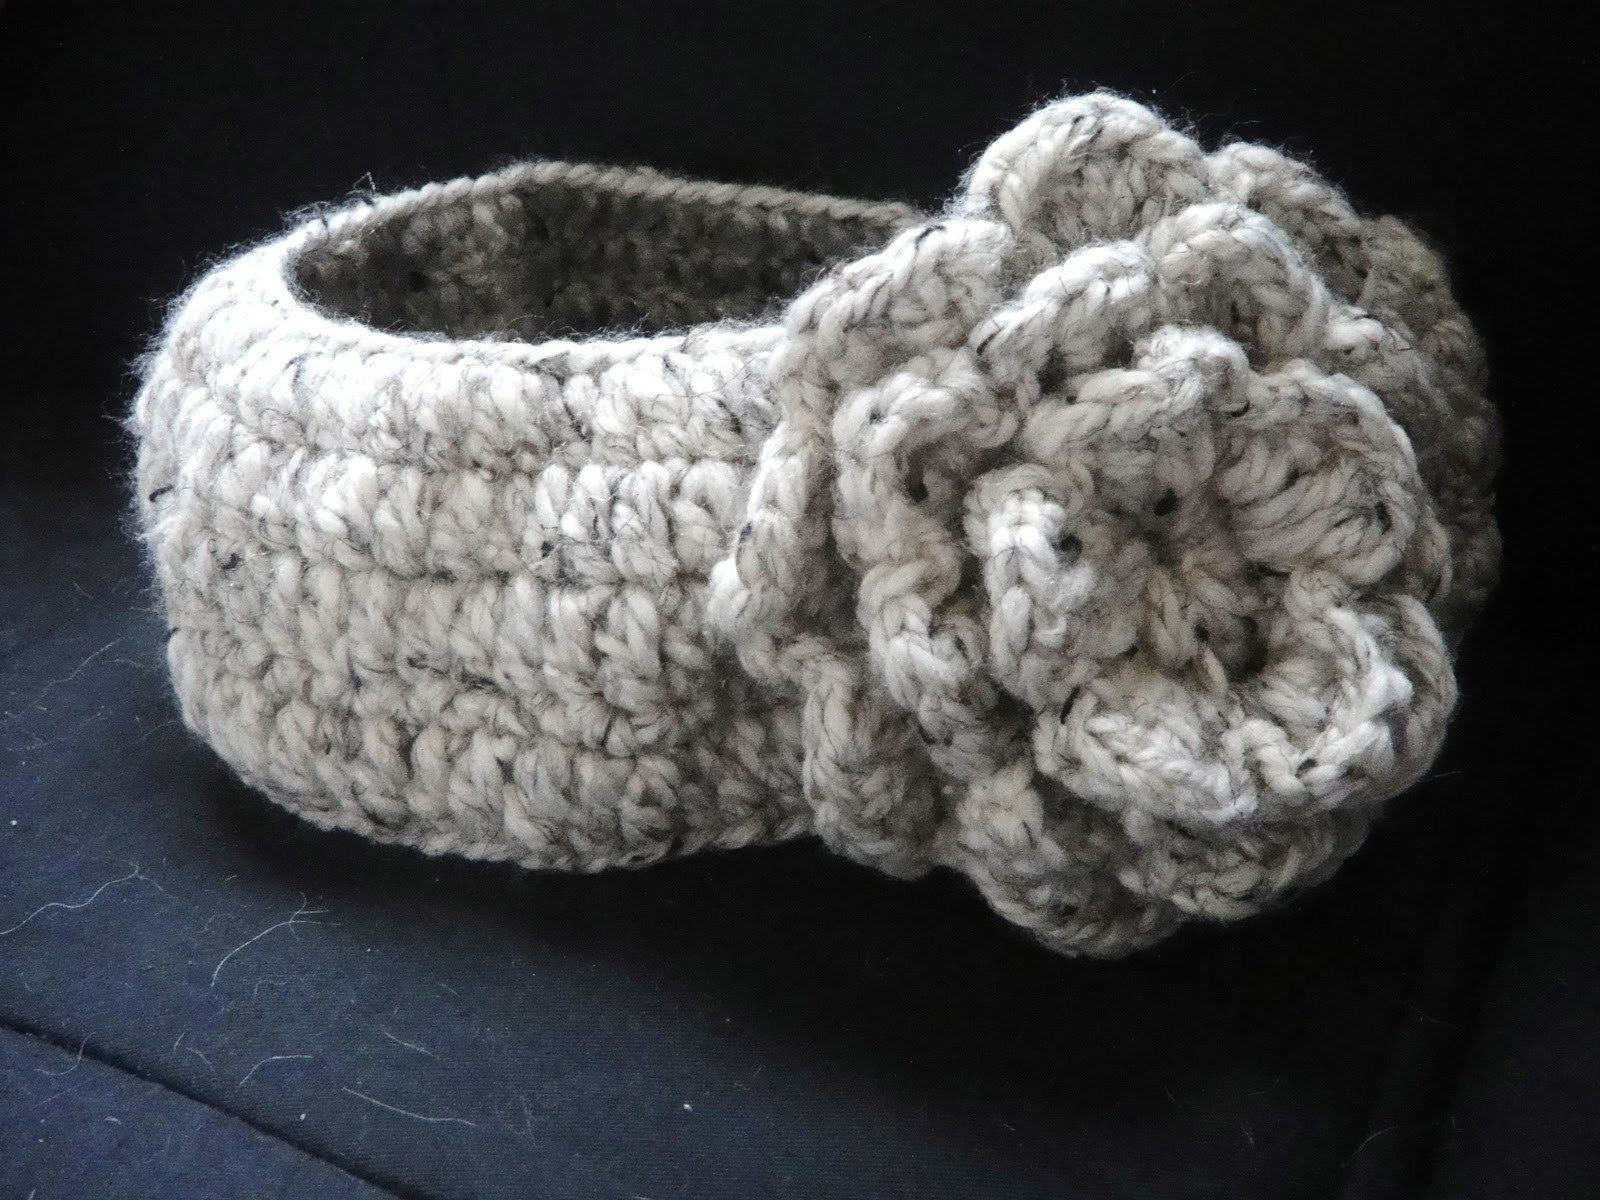 Crochet Ear Warmer Inspirational Tristinand Pany Crocheted Ear Warmer with Flower Of Awesome 46 Pictures Crochet Ear Warmer